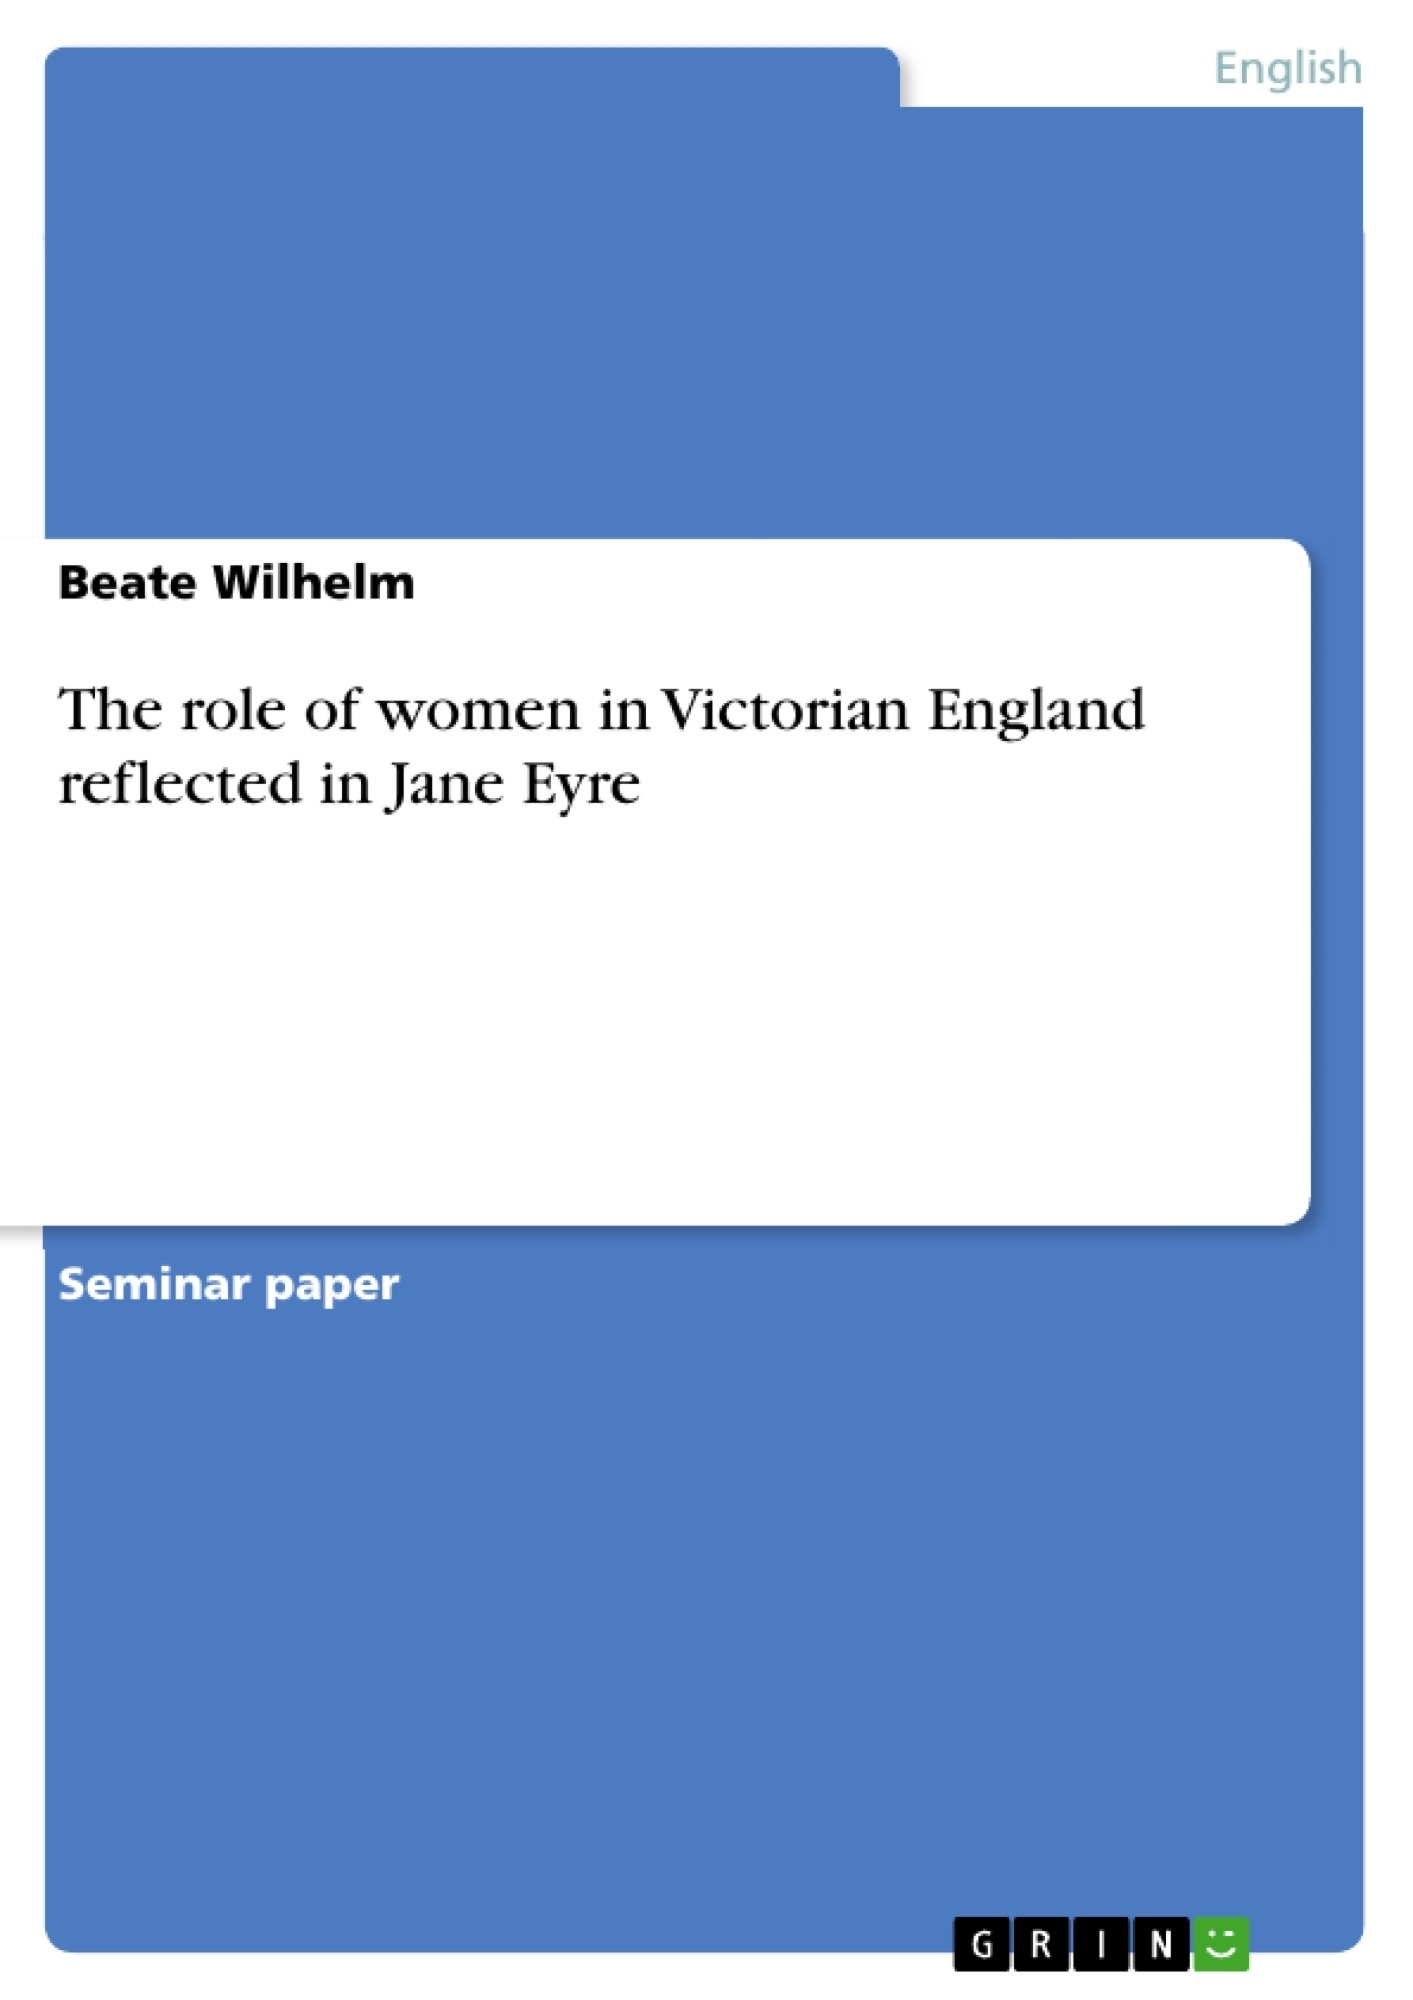 the role of women in victorian england reflected in jane eyre  the role of women in victorian england reflected in jane eyre publish your master s thesis bachelor s thesis essay or term paper